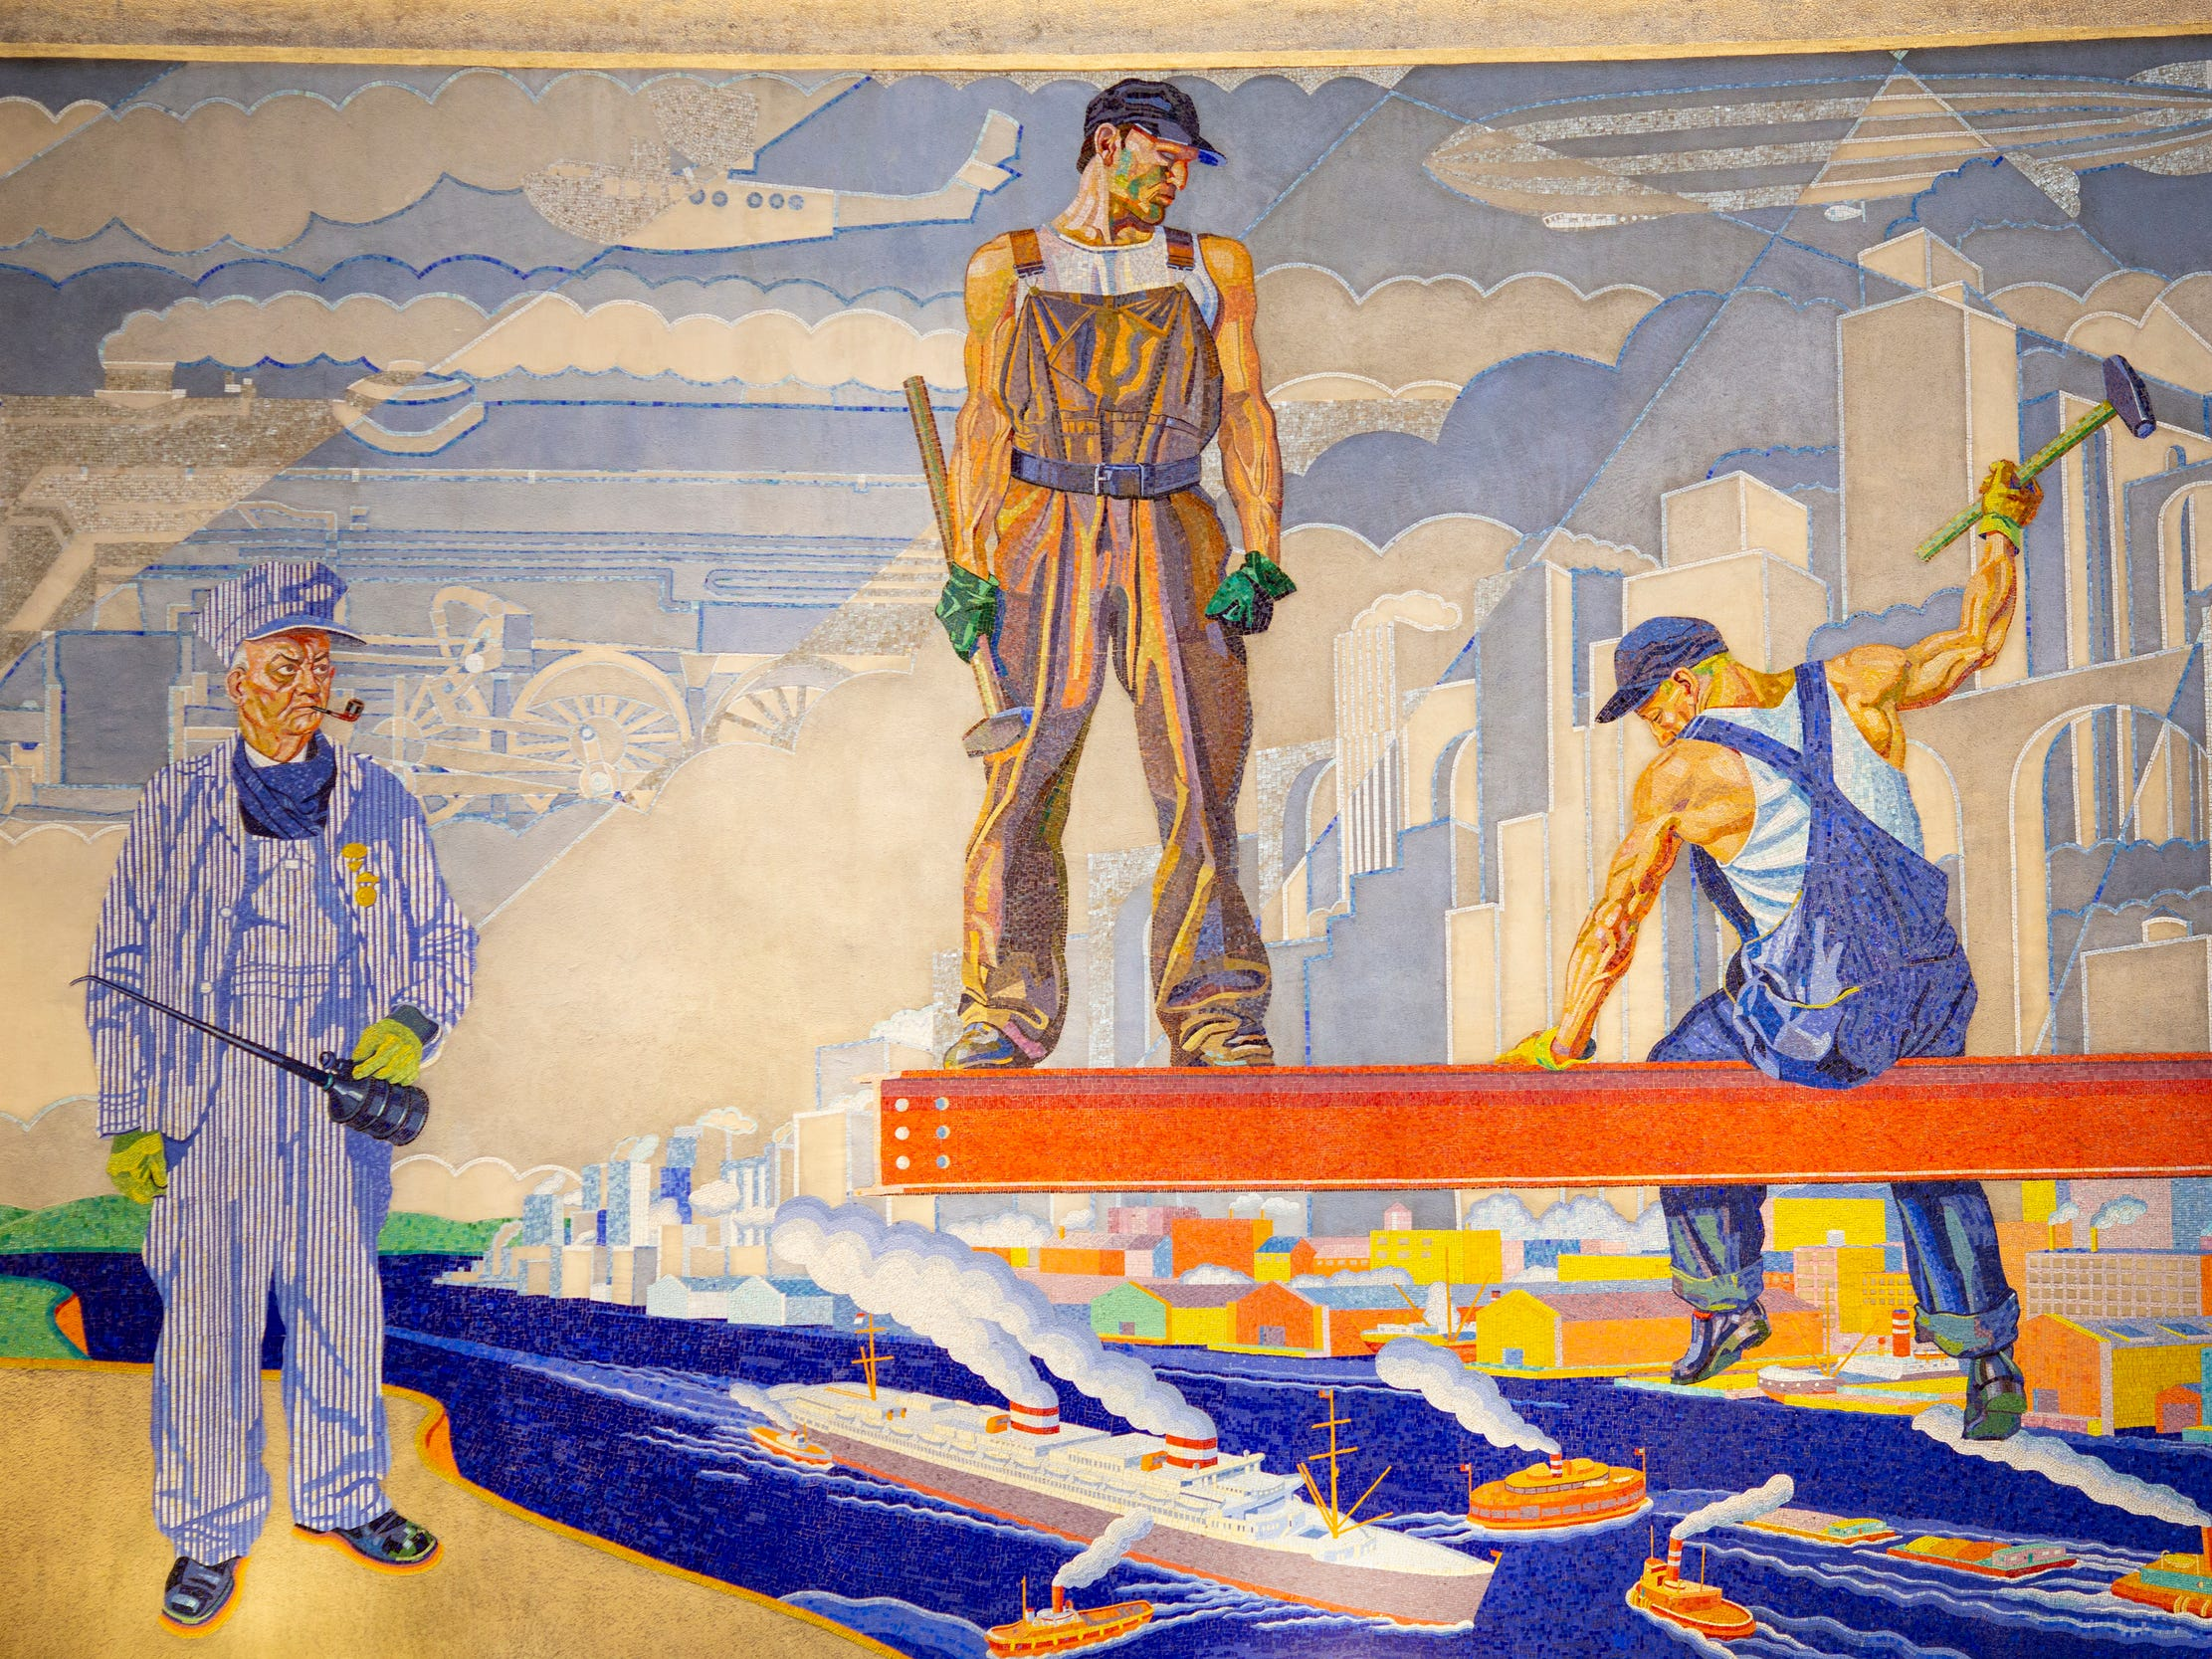 Crews spent about six weeks restoring, repairing and cleaning each side of the Winold Reiss mosaic murals inside the rotunda of the Cincinnati Museum Center at Union Terminal.